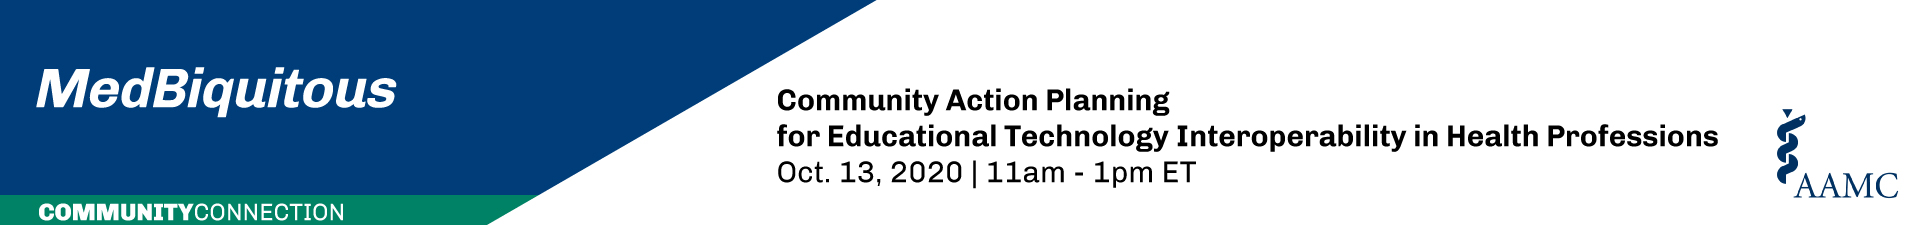 Virtual MedBiquitous/WGEA CRIME Present: Community Action Planning for Educational Technology Interoperability in Health Professions